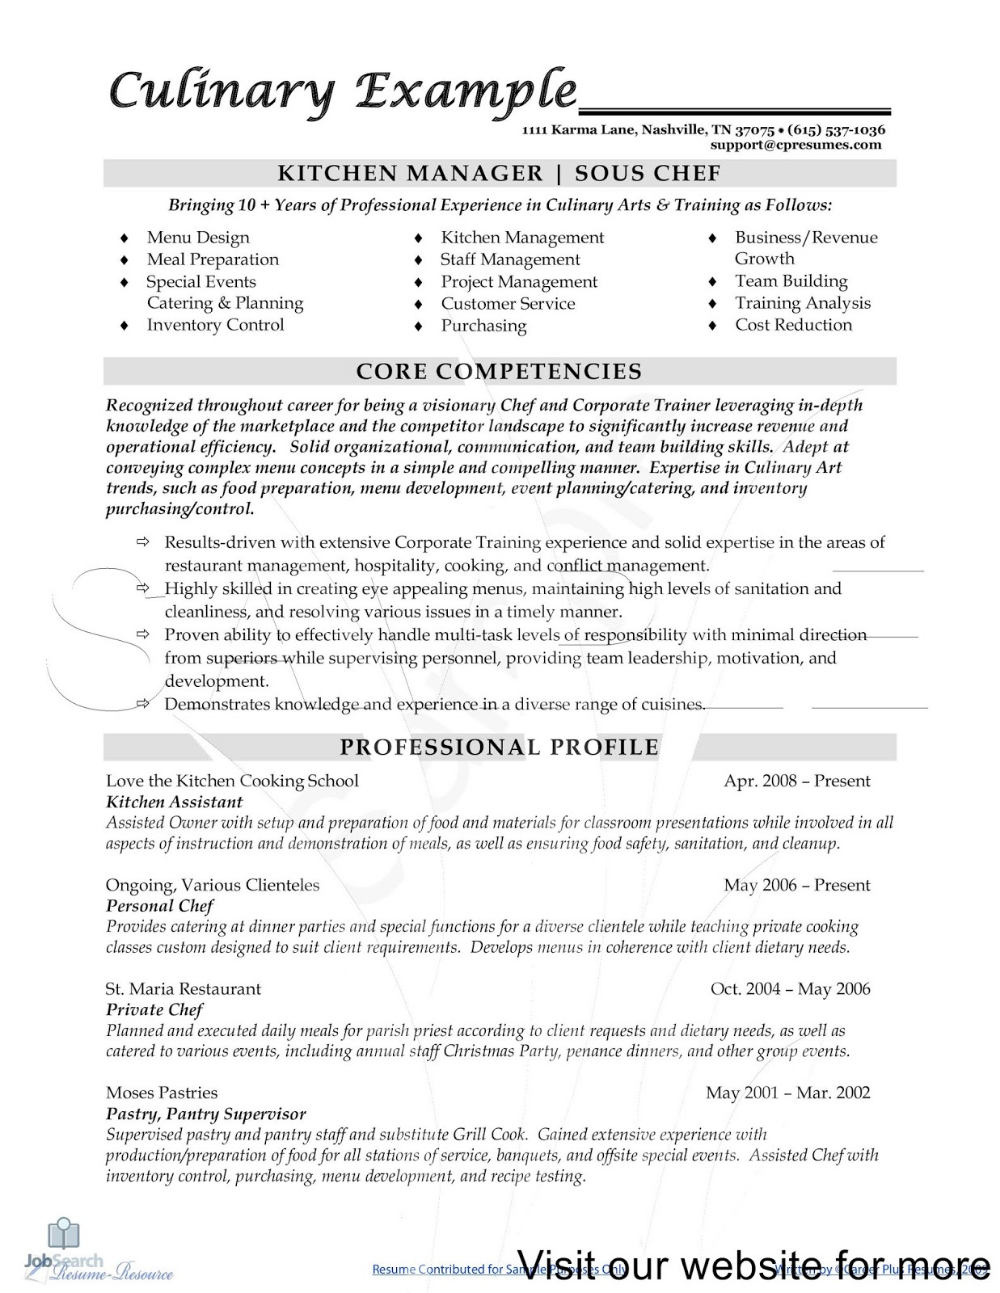 Sous Chef Resume Sample 2020 Cover Letter In 2020 Chef Resume